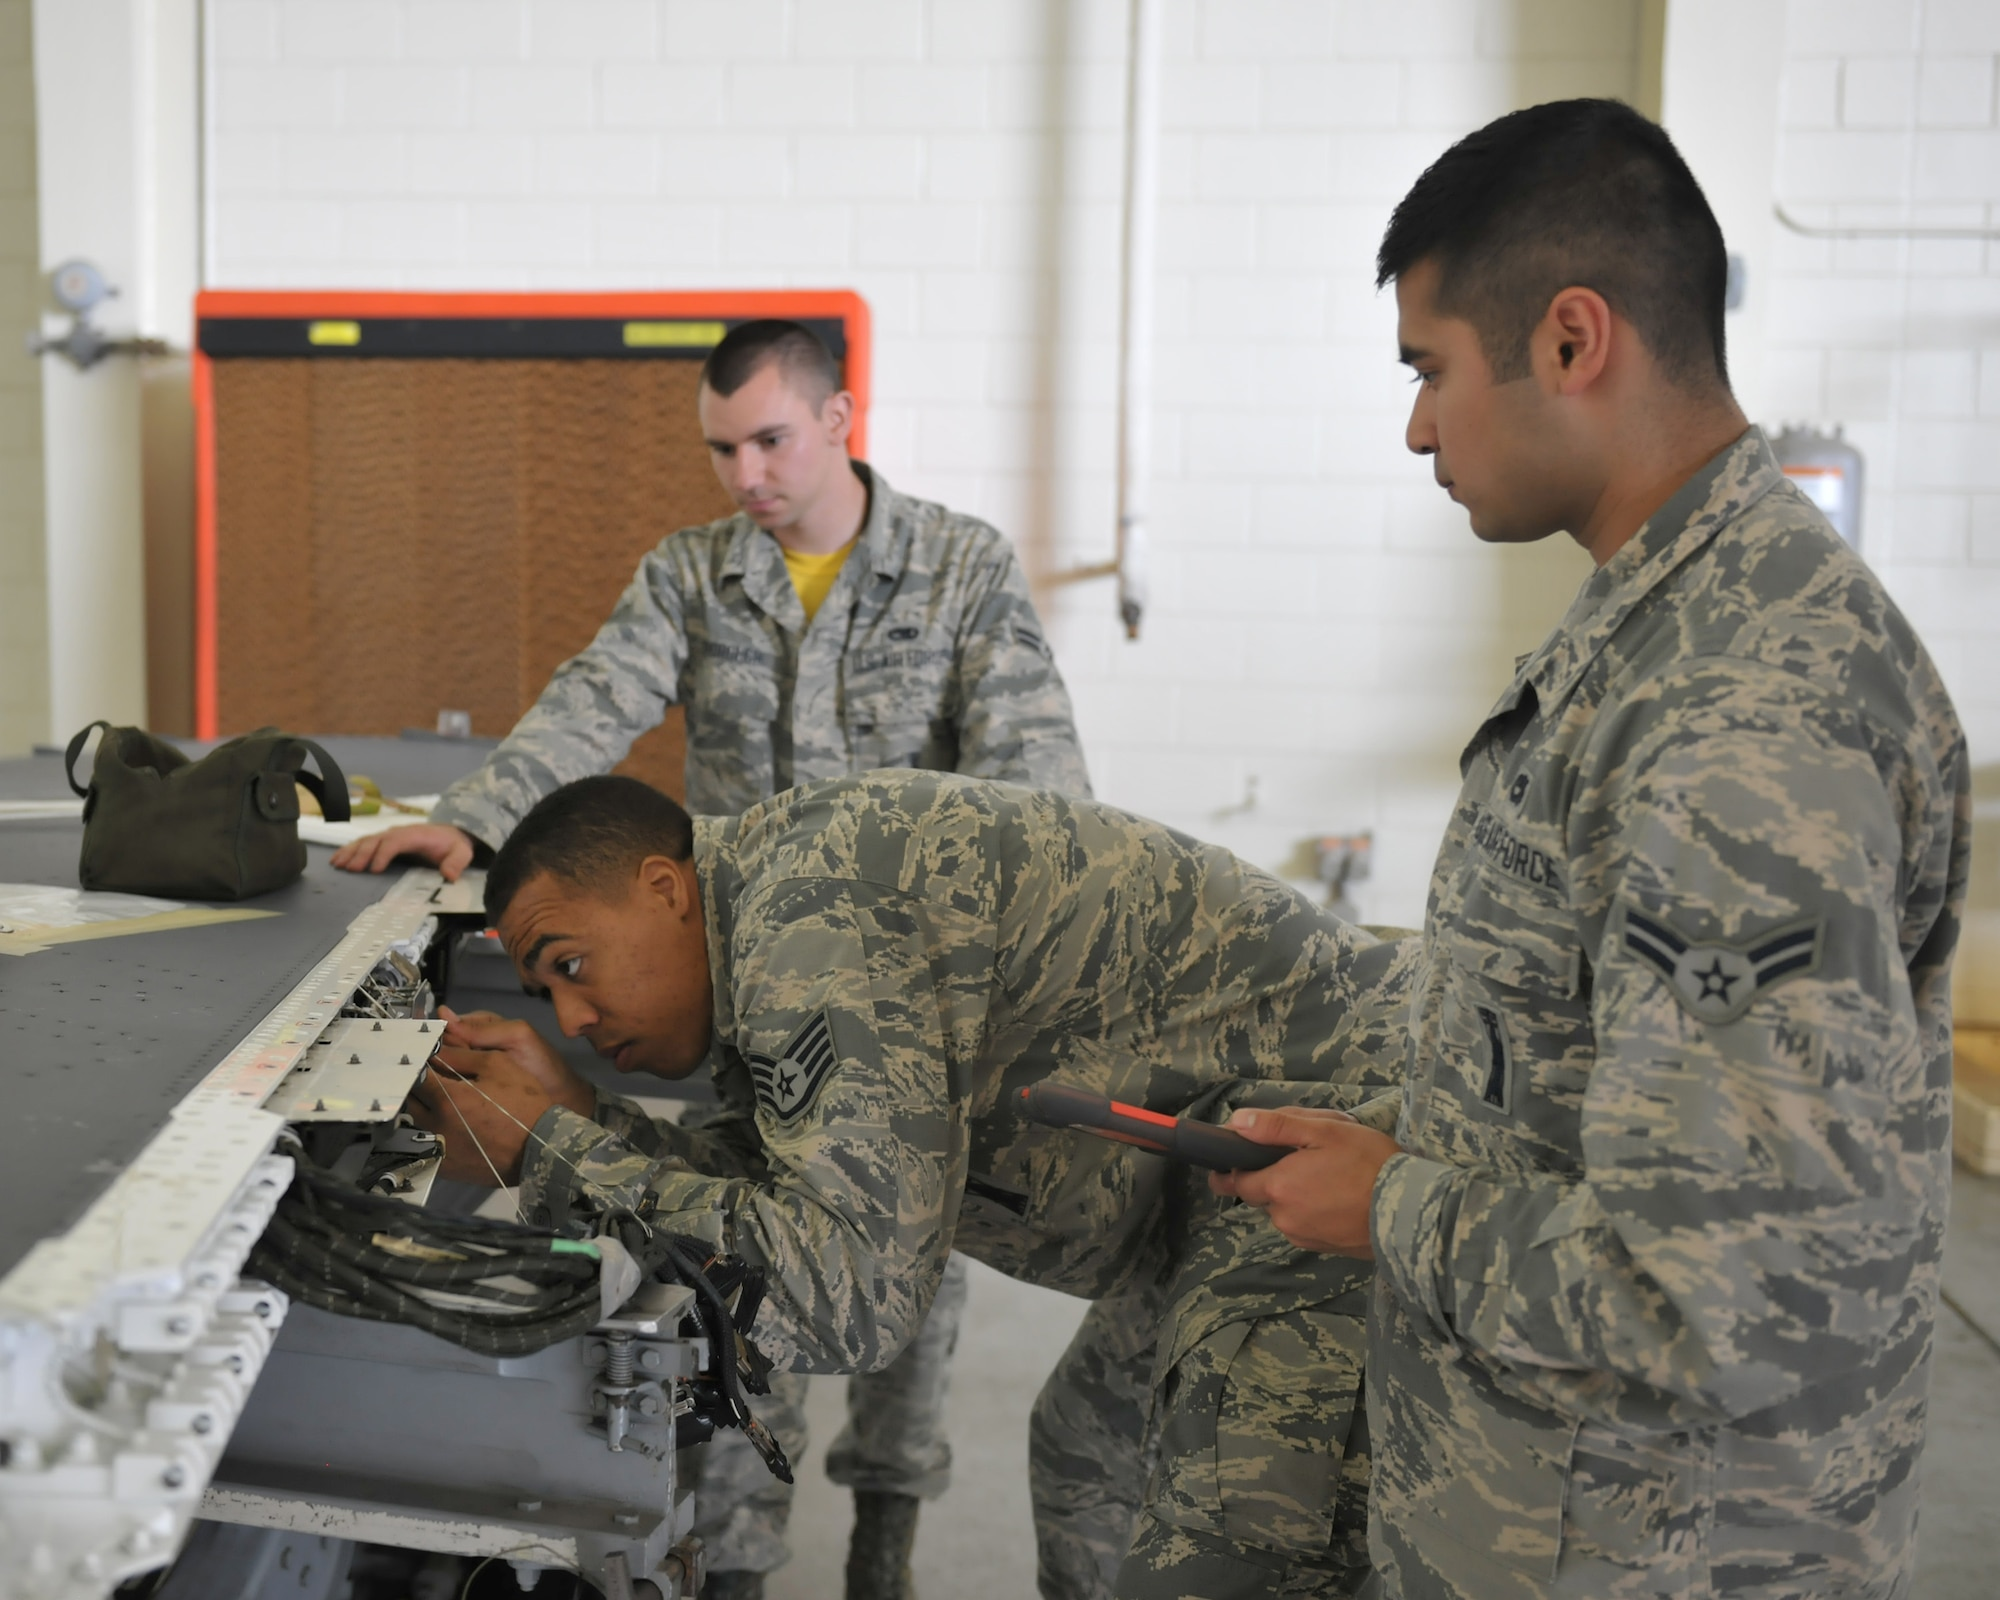 Staff Sgt. Dwight Hunter, 8th Aircraft Maintenance Squadron Aircraft Armament Systems team chief, verifies connectors for a protective covering and proper routing of wires inside a wing as team members observe June 24, 2016 at Kunsan Air Base, Republic of Korea. Hunter and his team are working with other maintenance Air Force Specialty Codes on a simultaneous double wing replacement. (U.S. Air Force photo/Master Sgt. David Miller)